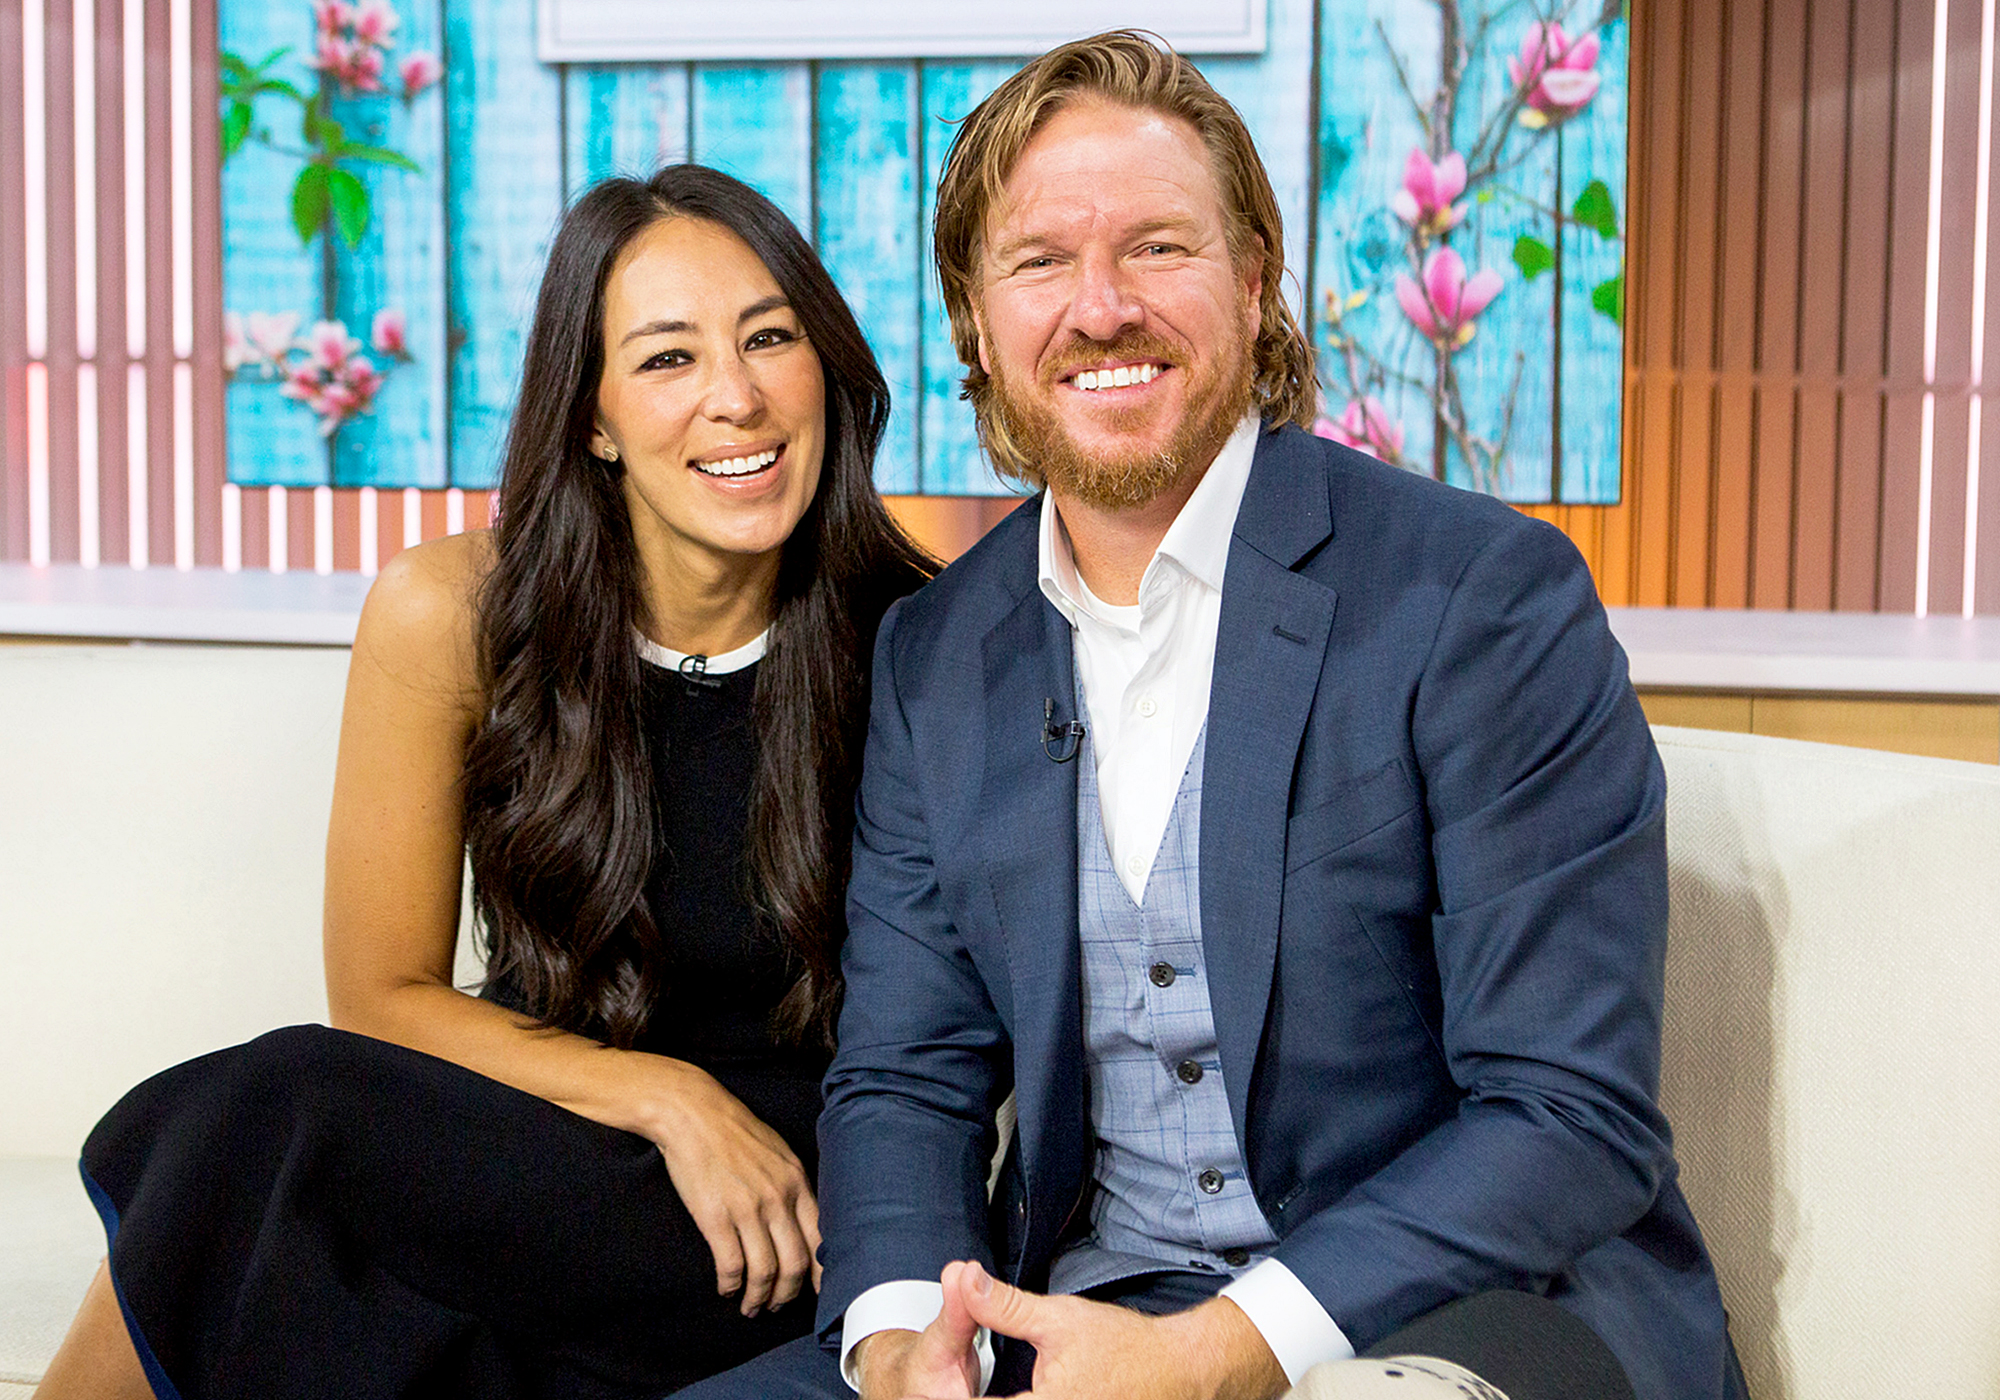 Joanna Gaines Shares Adorable Photo Of New Baby Boy